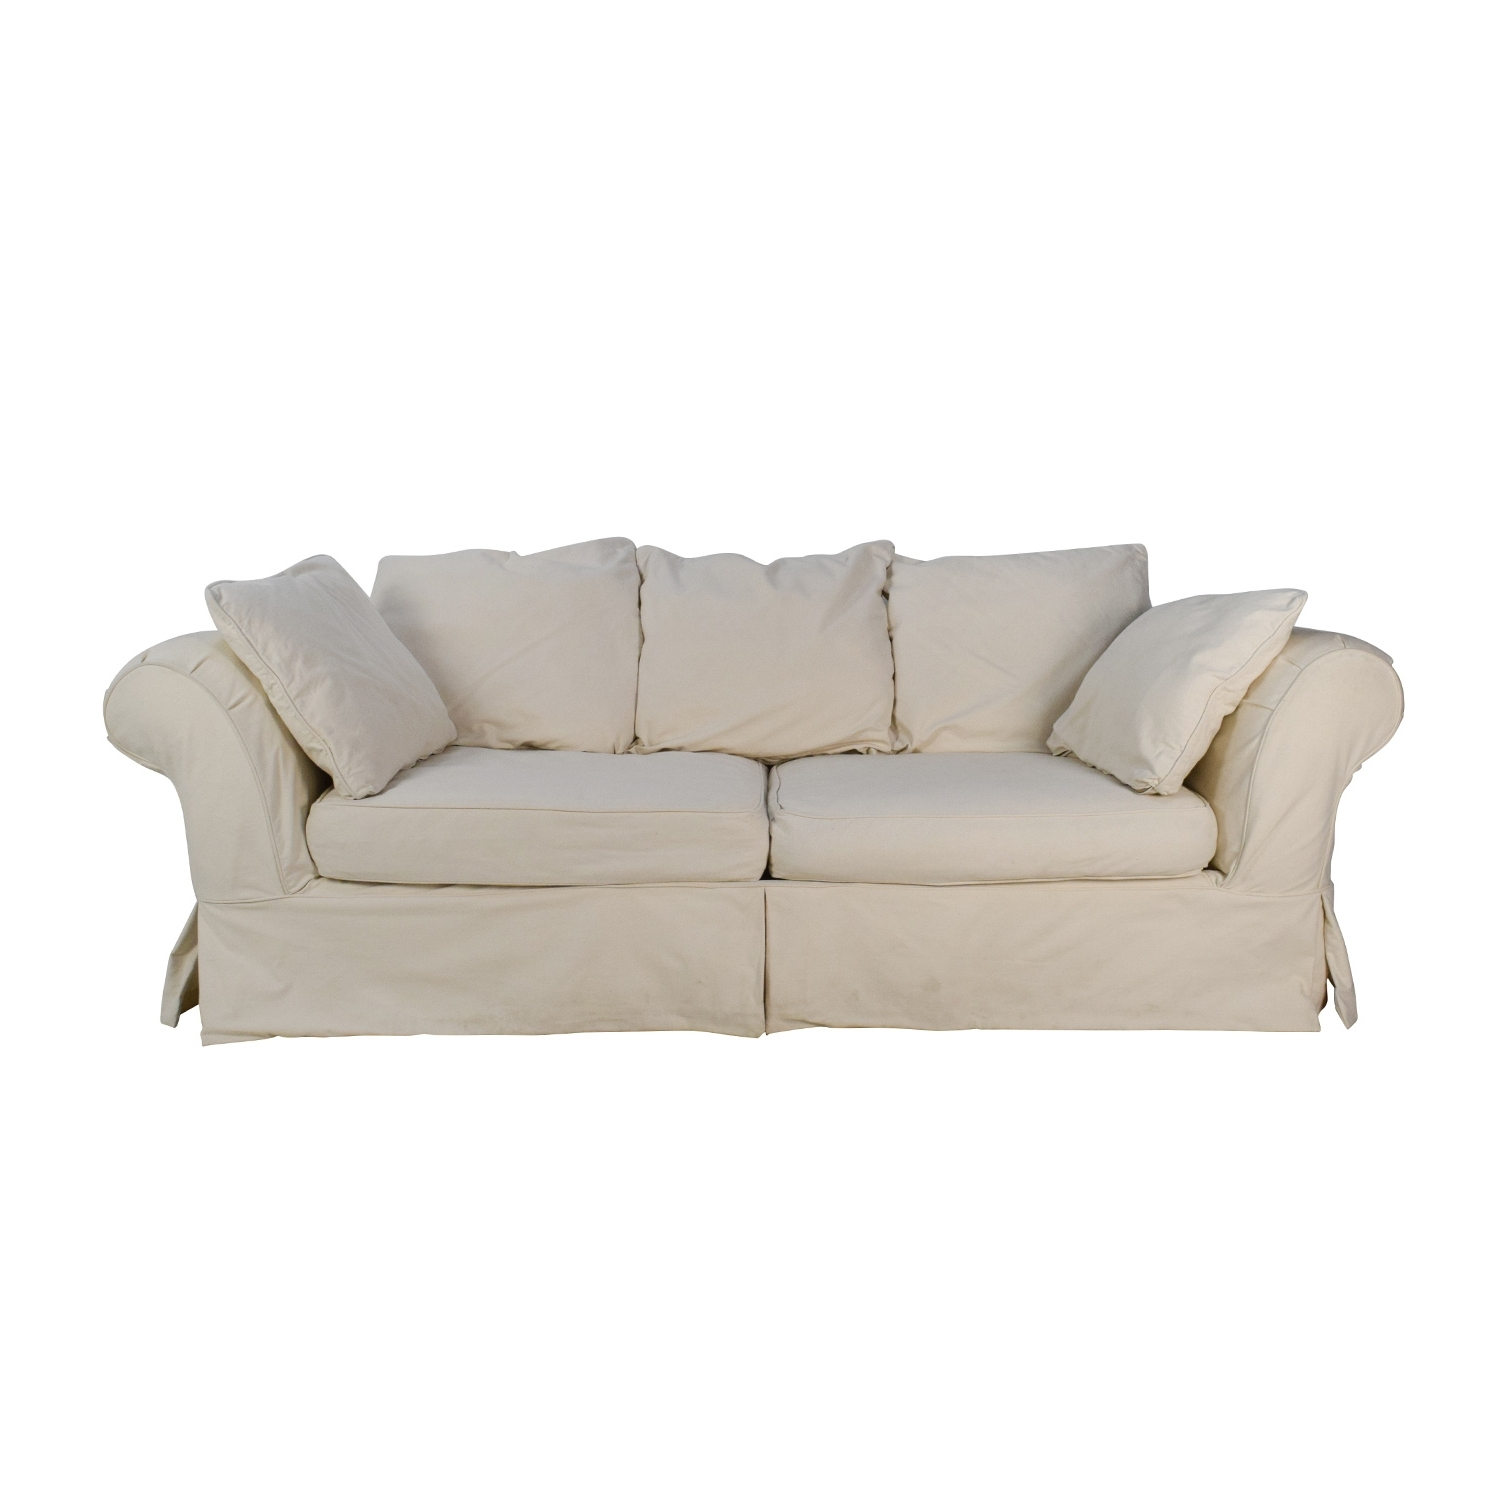 [%89% Off – Jennifer Convertibles Jennifer Convertibles Linda Intended For Well Known Jennifer Convertibles Sectional Sofas|Jennifer Convertibles Sectional Sofas With Well Liked 89% Off – Jennifer Convertibles Jennifer Convertibles Linda|Favorite Jennifer Convertibles Sectional Sofas With Regard To 89% Off – Jennifer Convertibles Jennifer Convertibles Linda|2017 89% Off – Jennifer Convertibles Jennifer Convertibles Linda In Jennifer Convertibles Sectional Sofas%] (View 5 of 15)